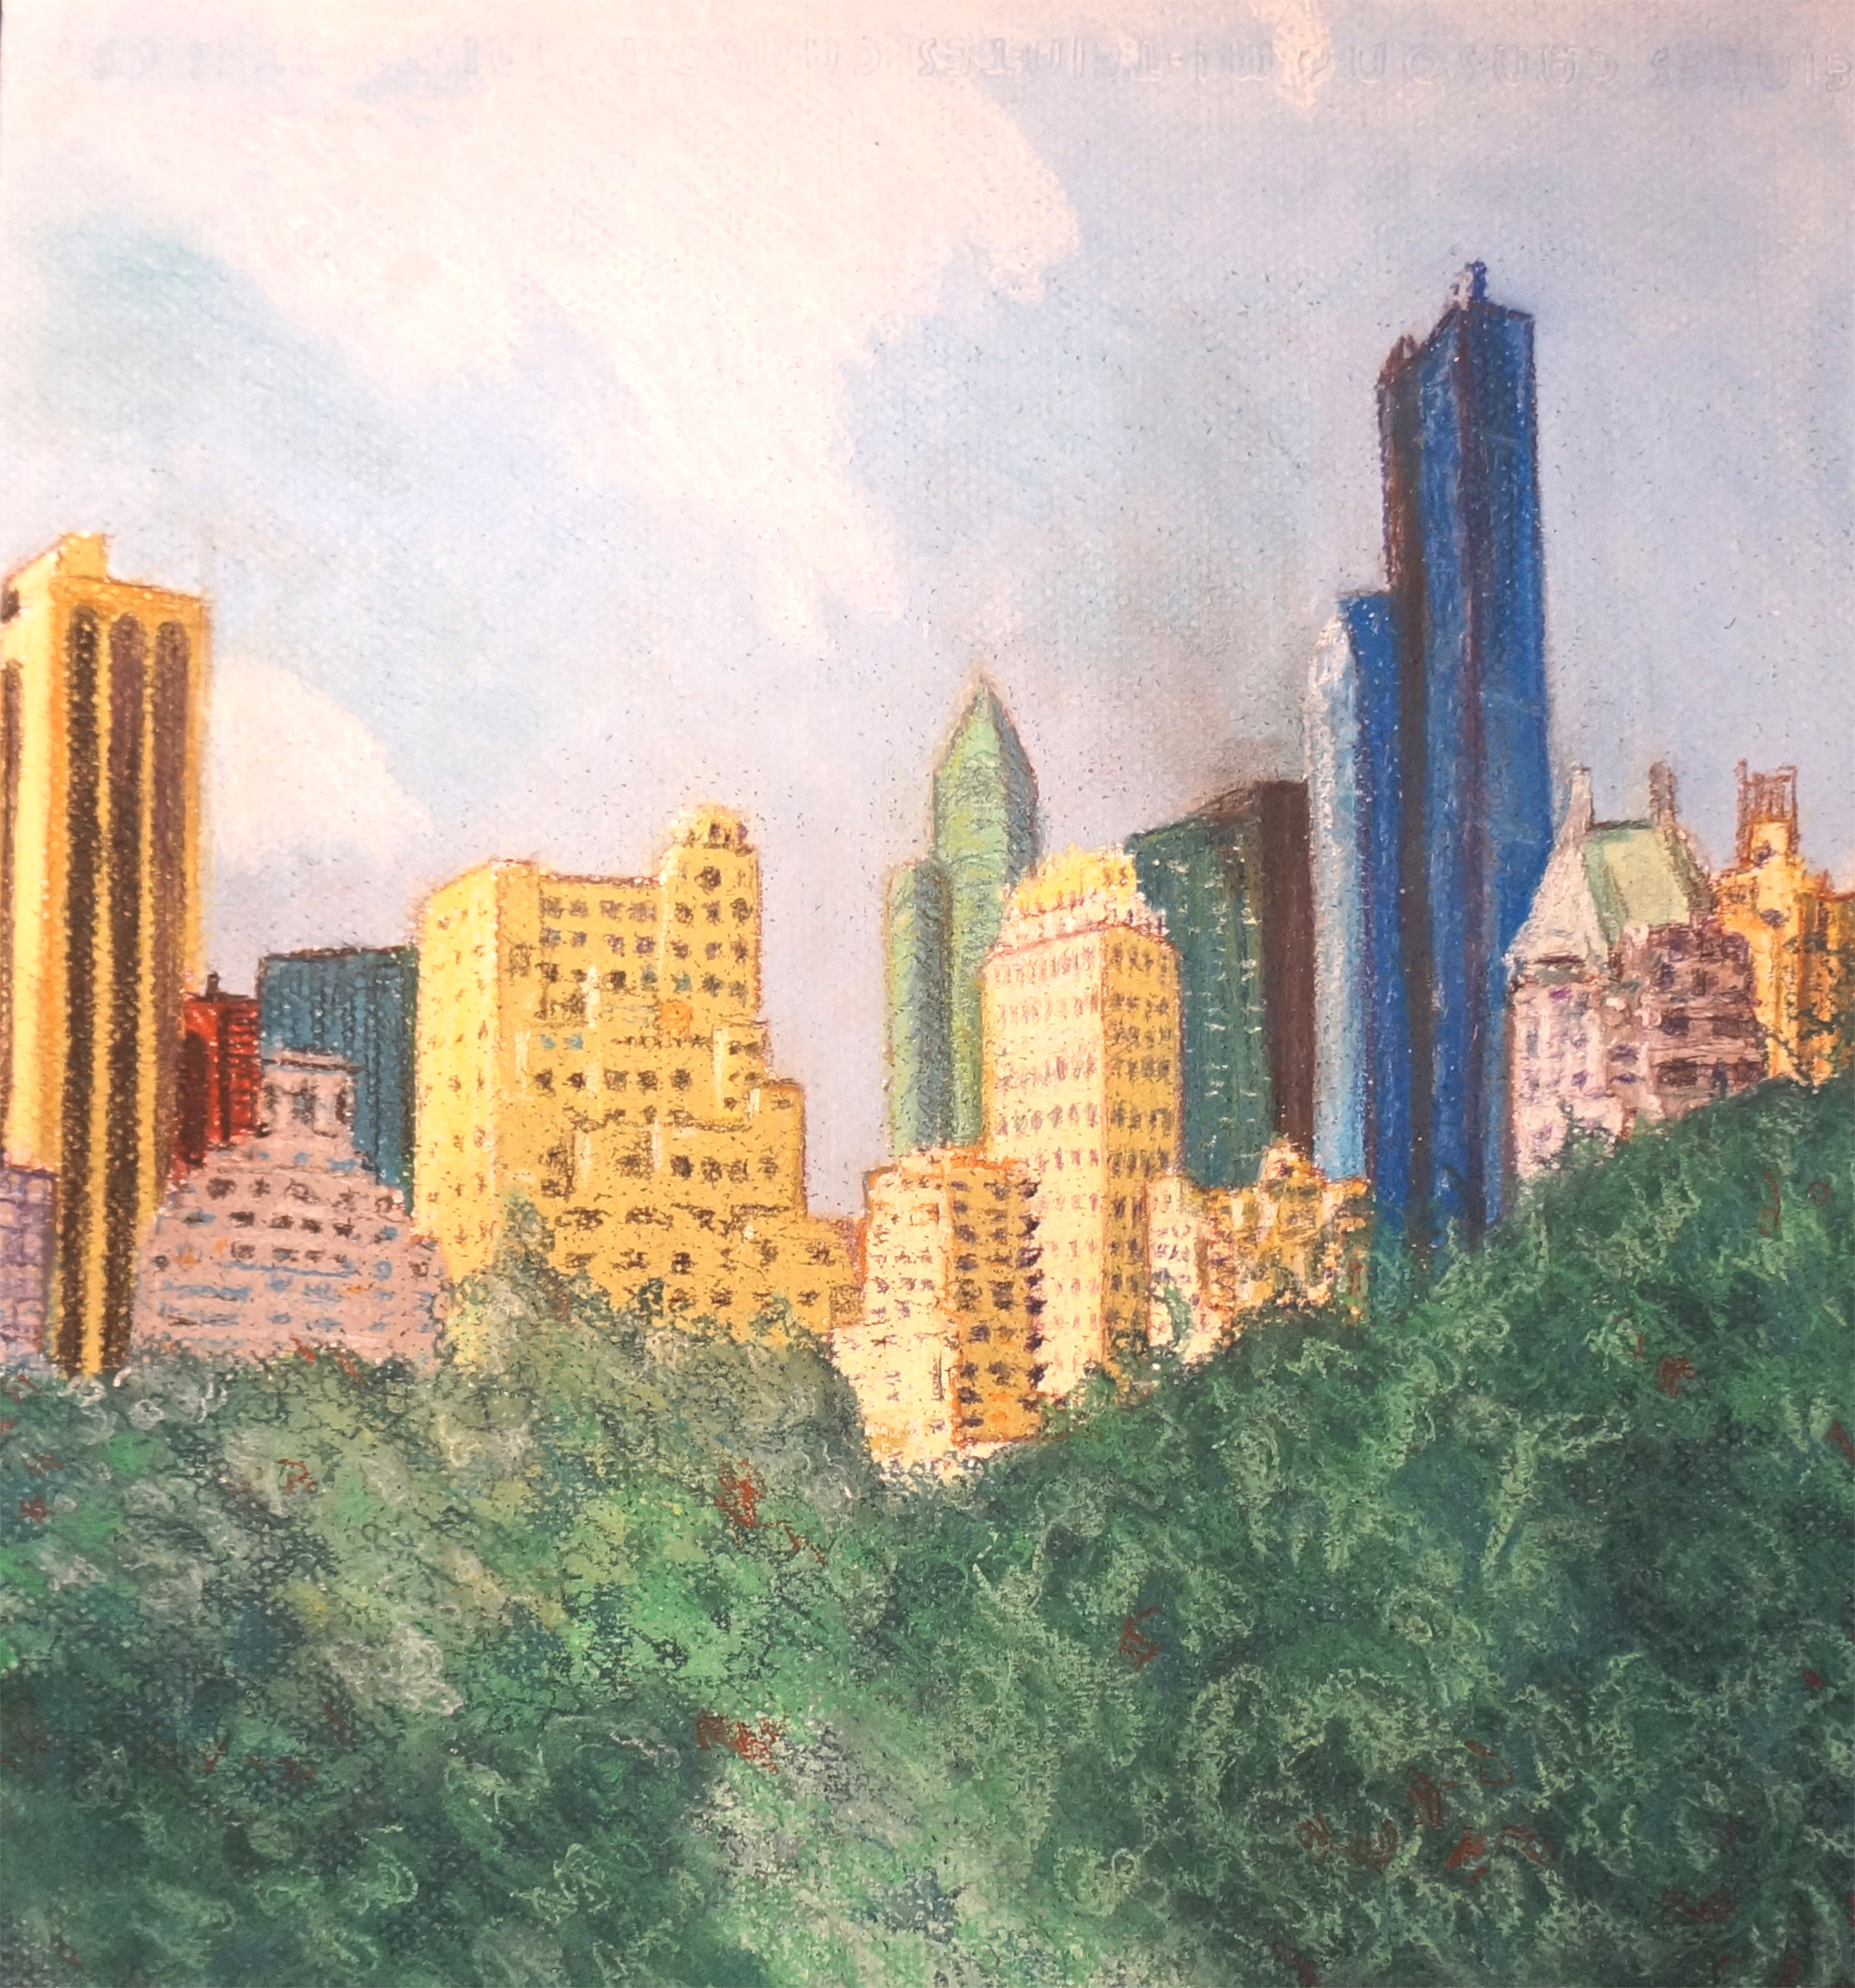 At the doors of Central Park, pastel